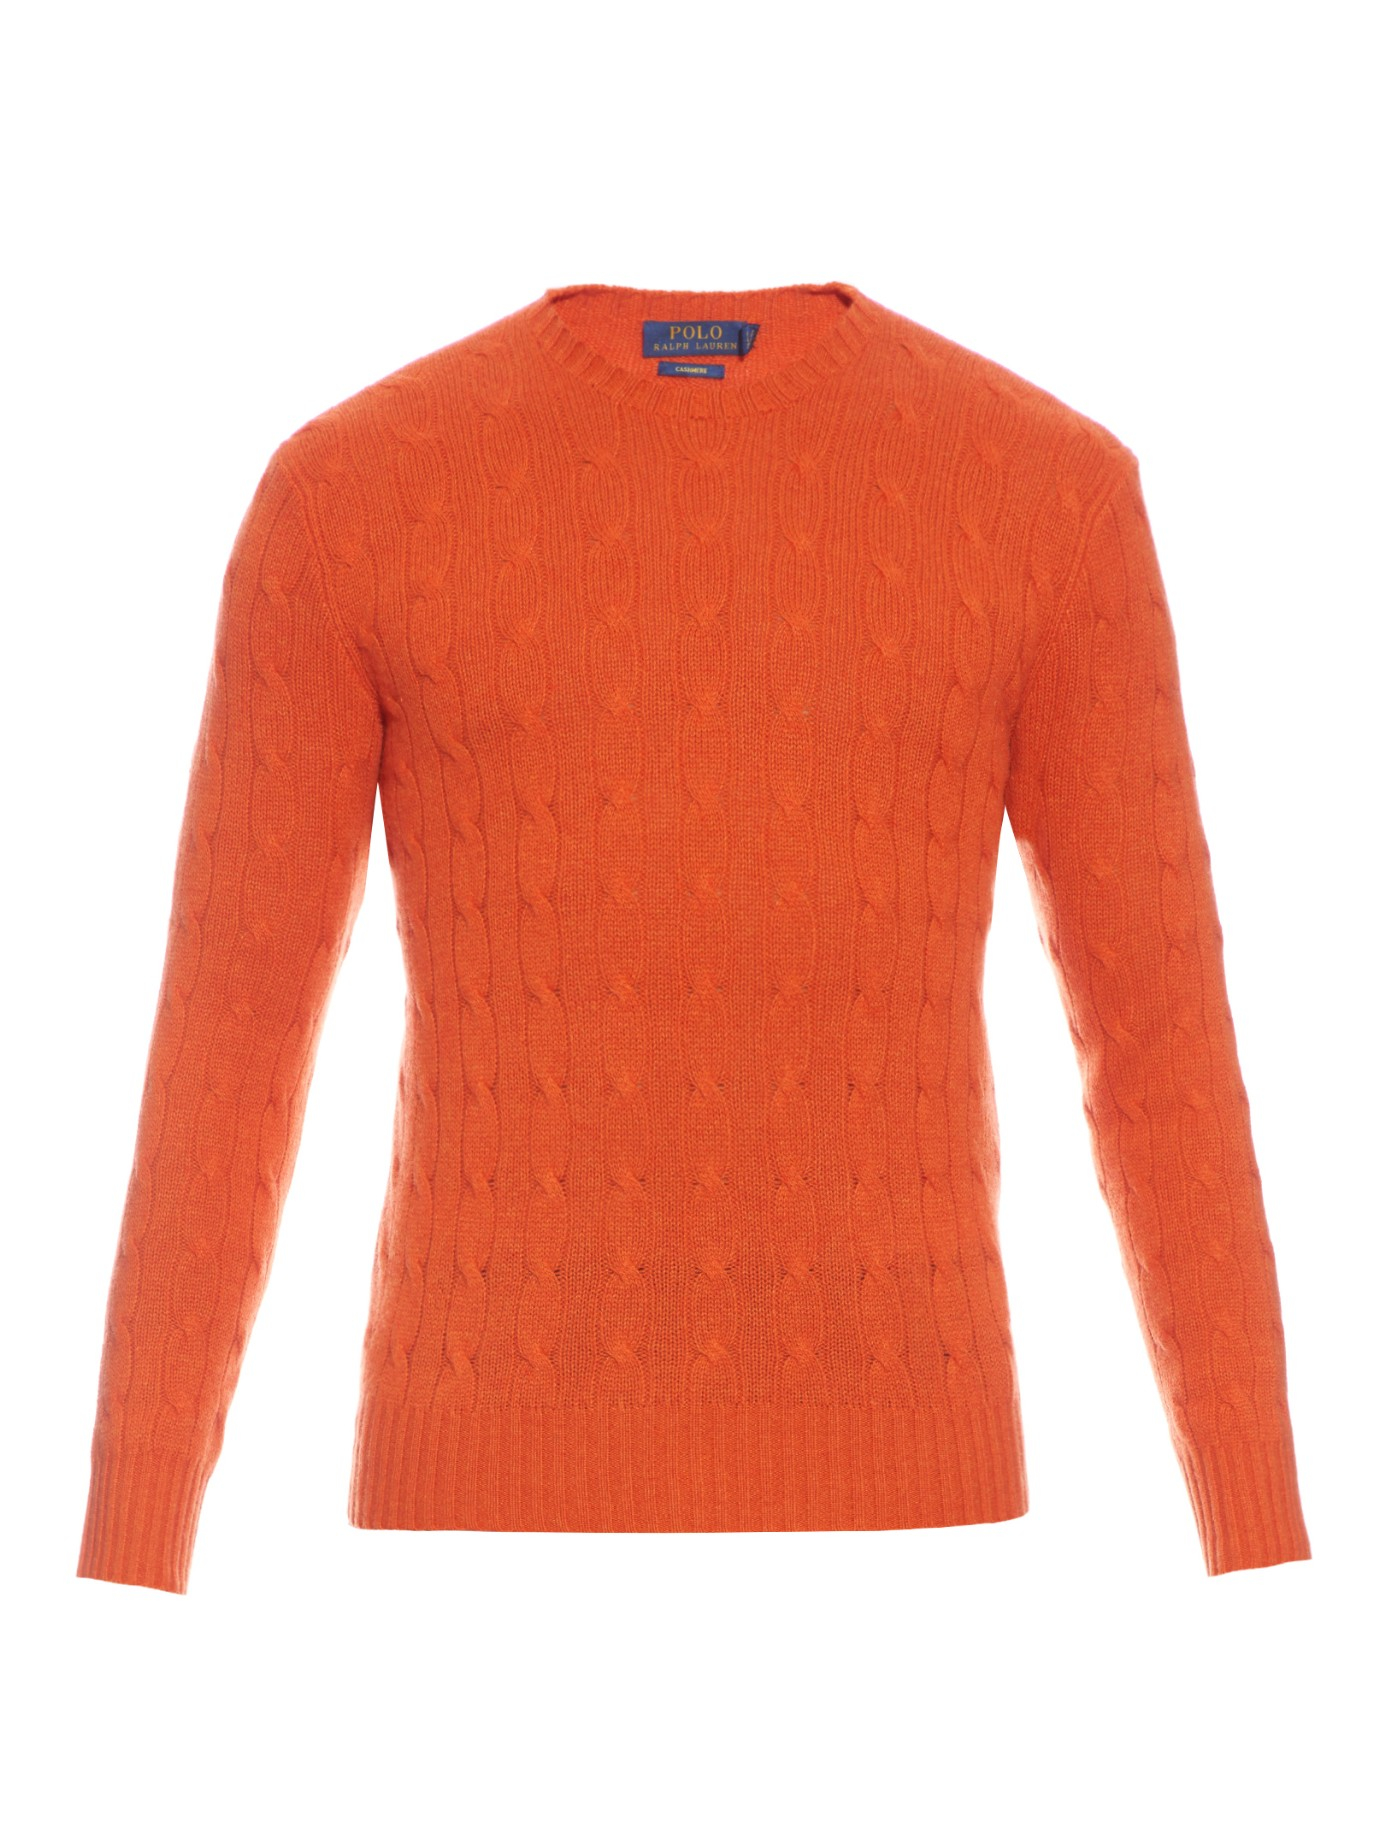 Polo ralph lauren Cable-knit Cashmere Sweater in Orange ...